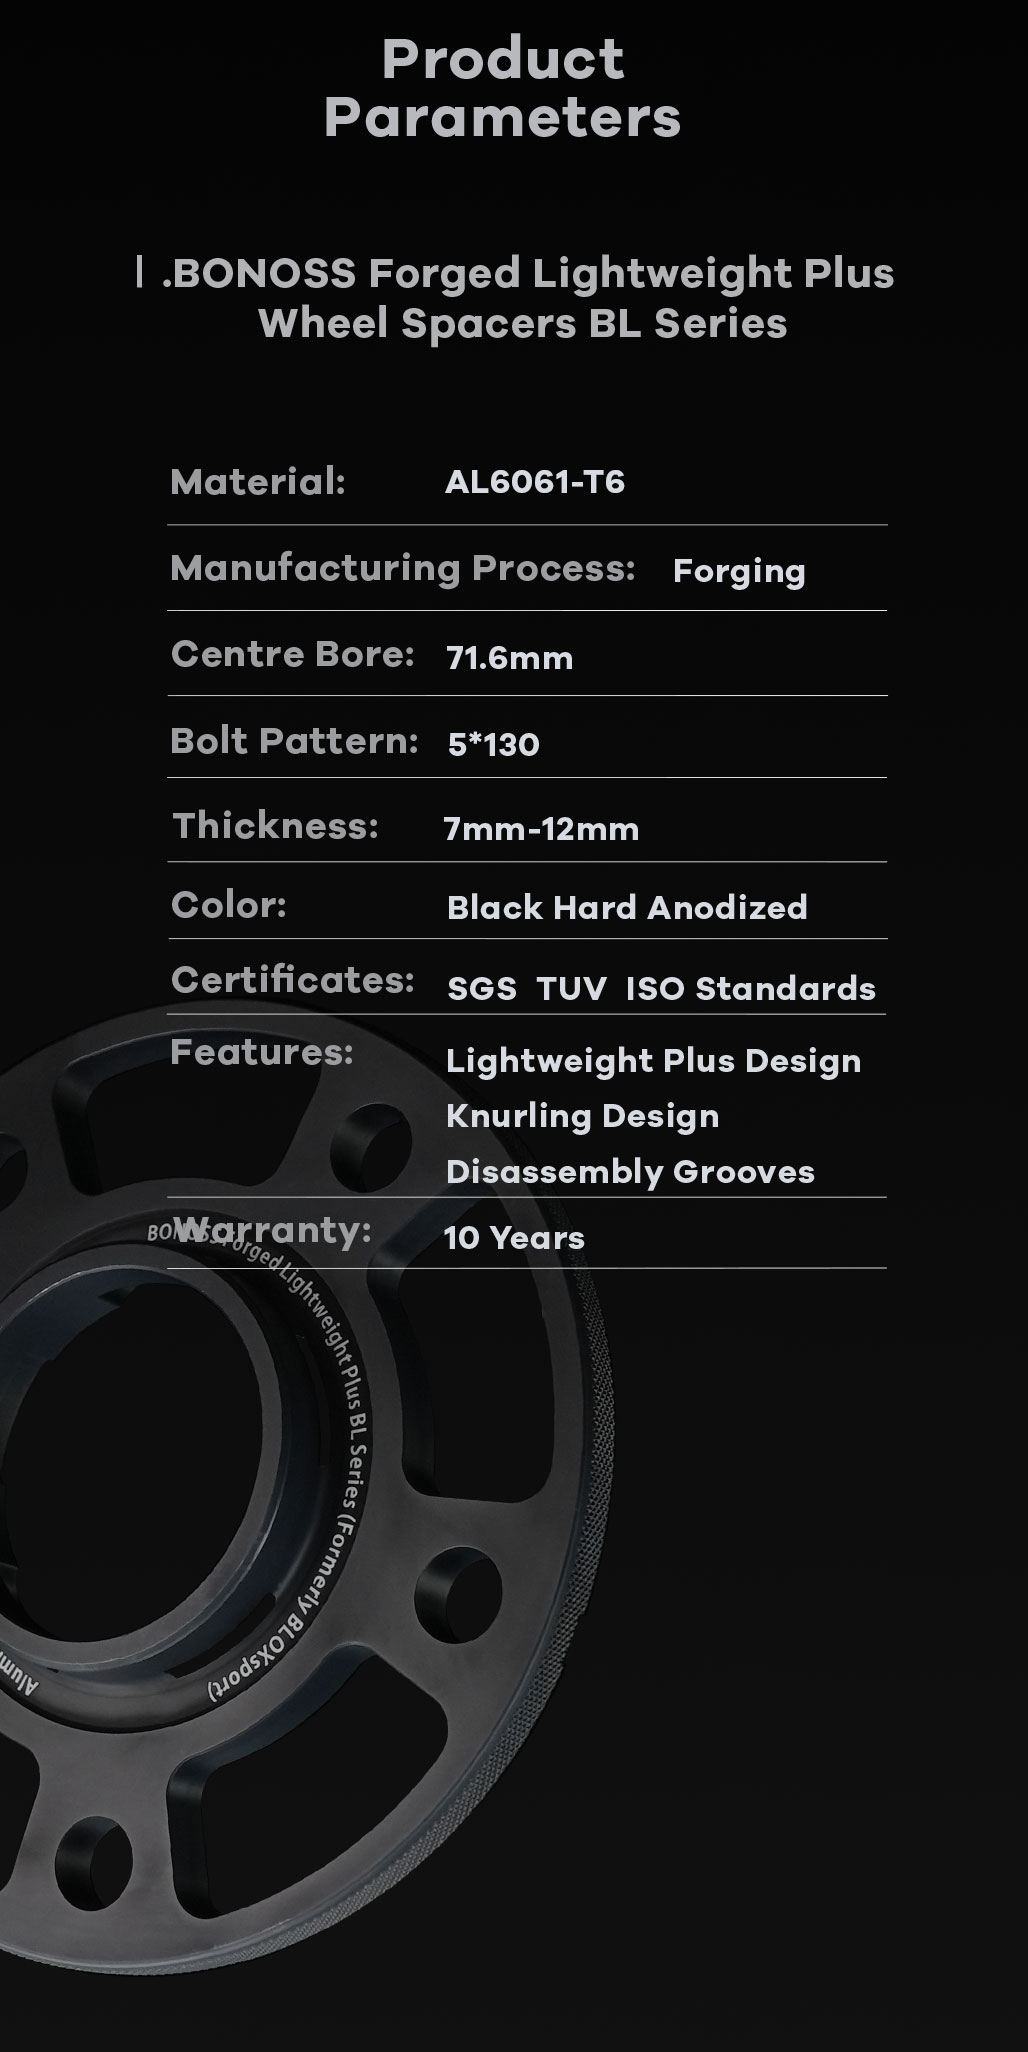 BONOSS-forged-lightweight-plus-5petals-special-hubcentric-wheel-spacer-for-Porsche-Taycan-5x130-71.6-14x1.5-6061t6-by-grace-5